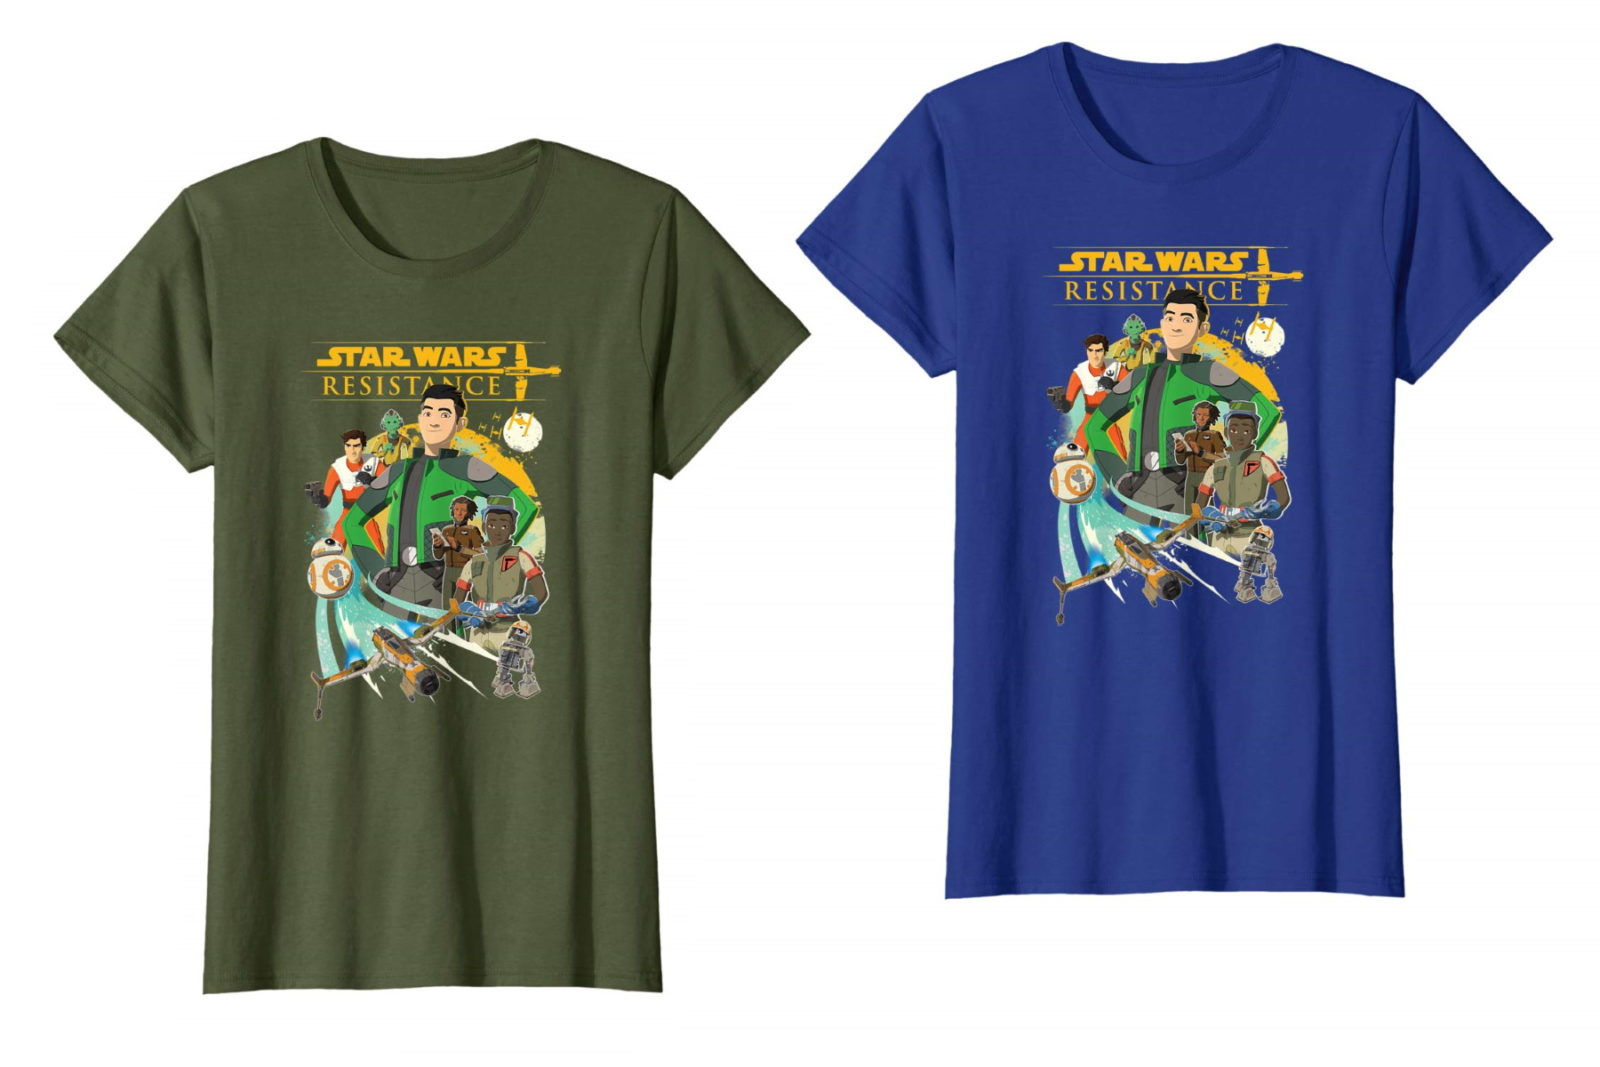 Women's Star Wars Resistance T-Shirt on Amazon